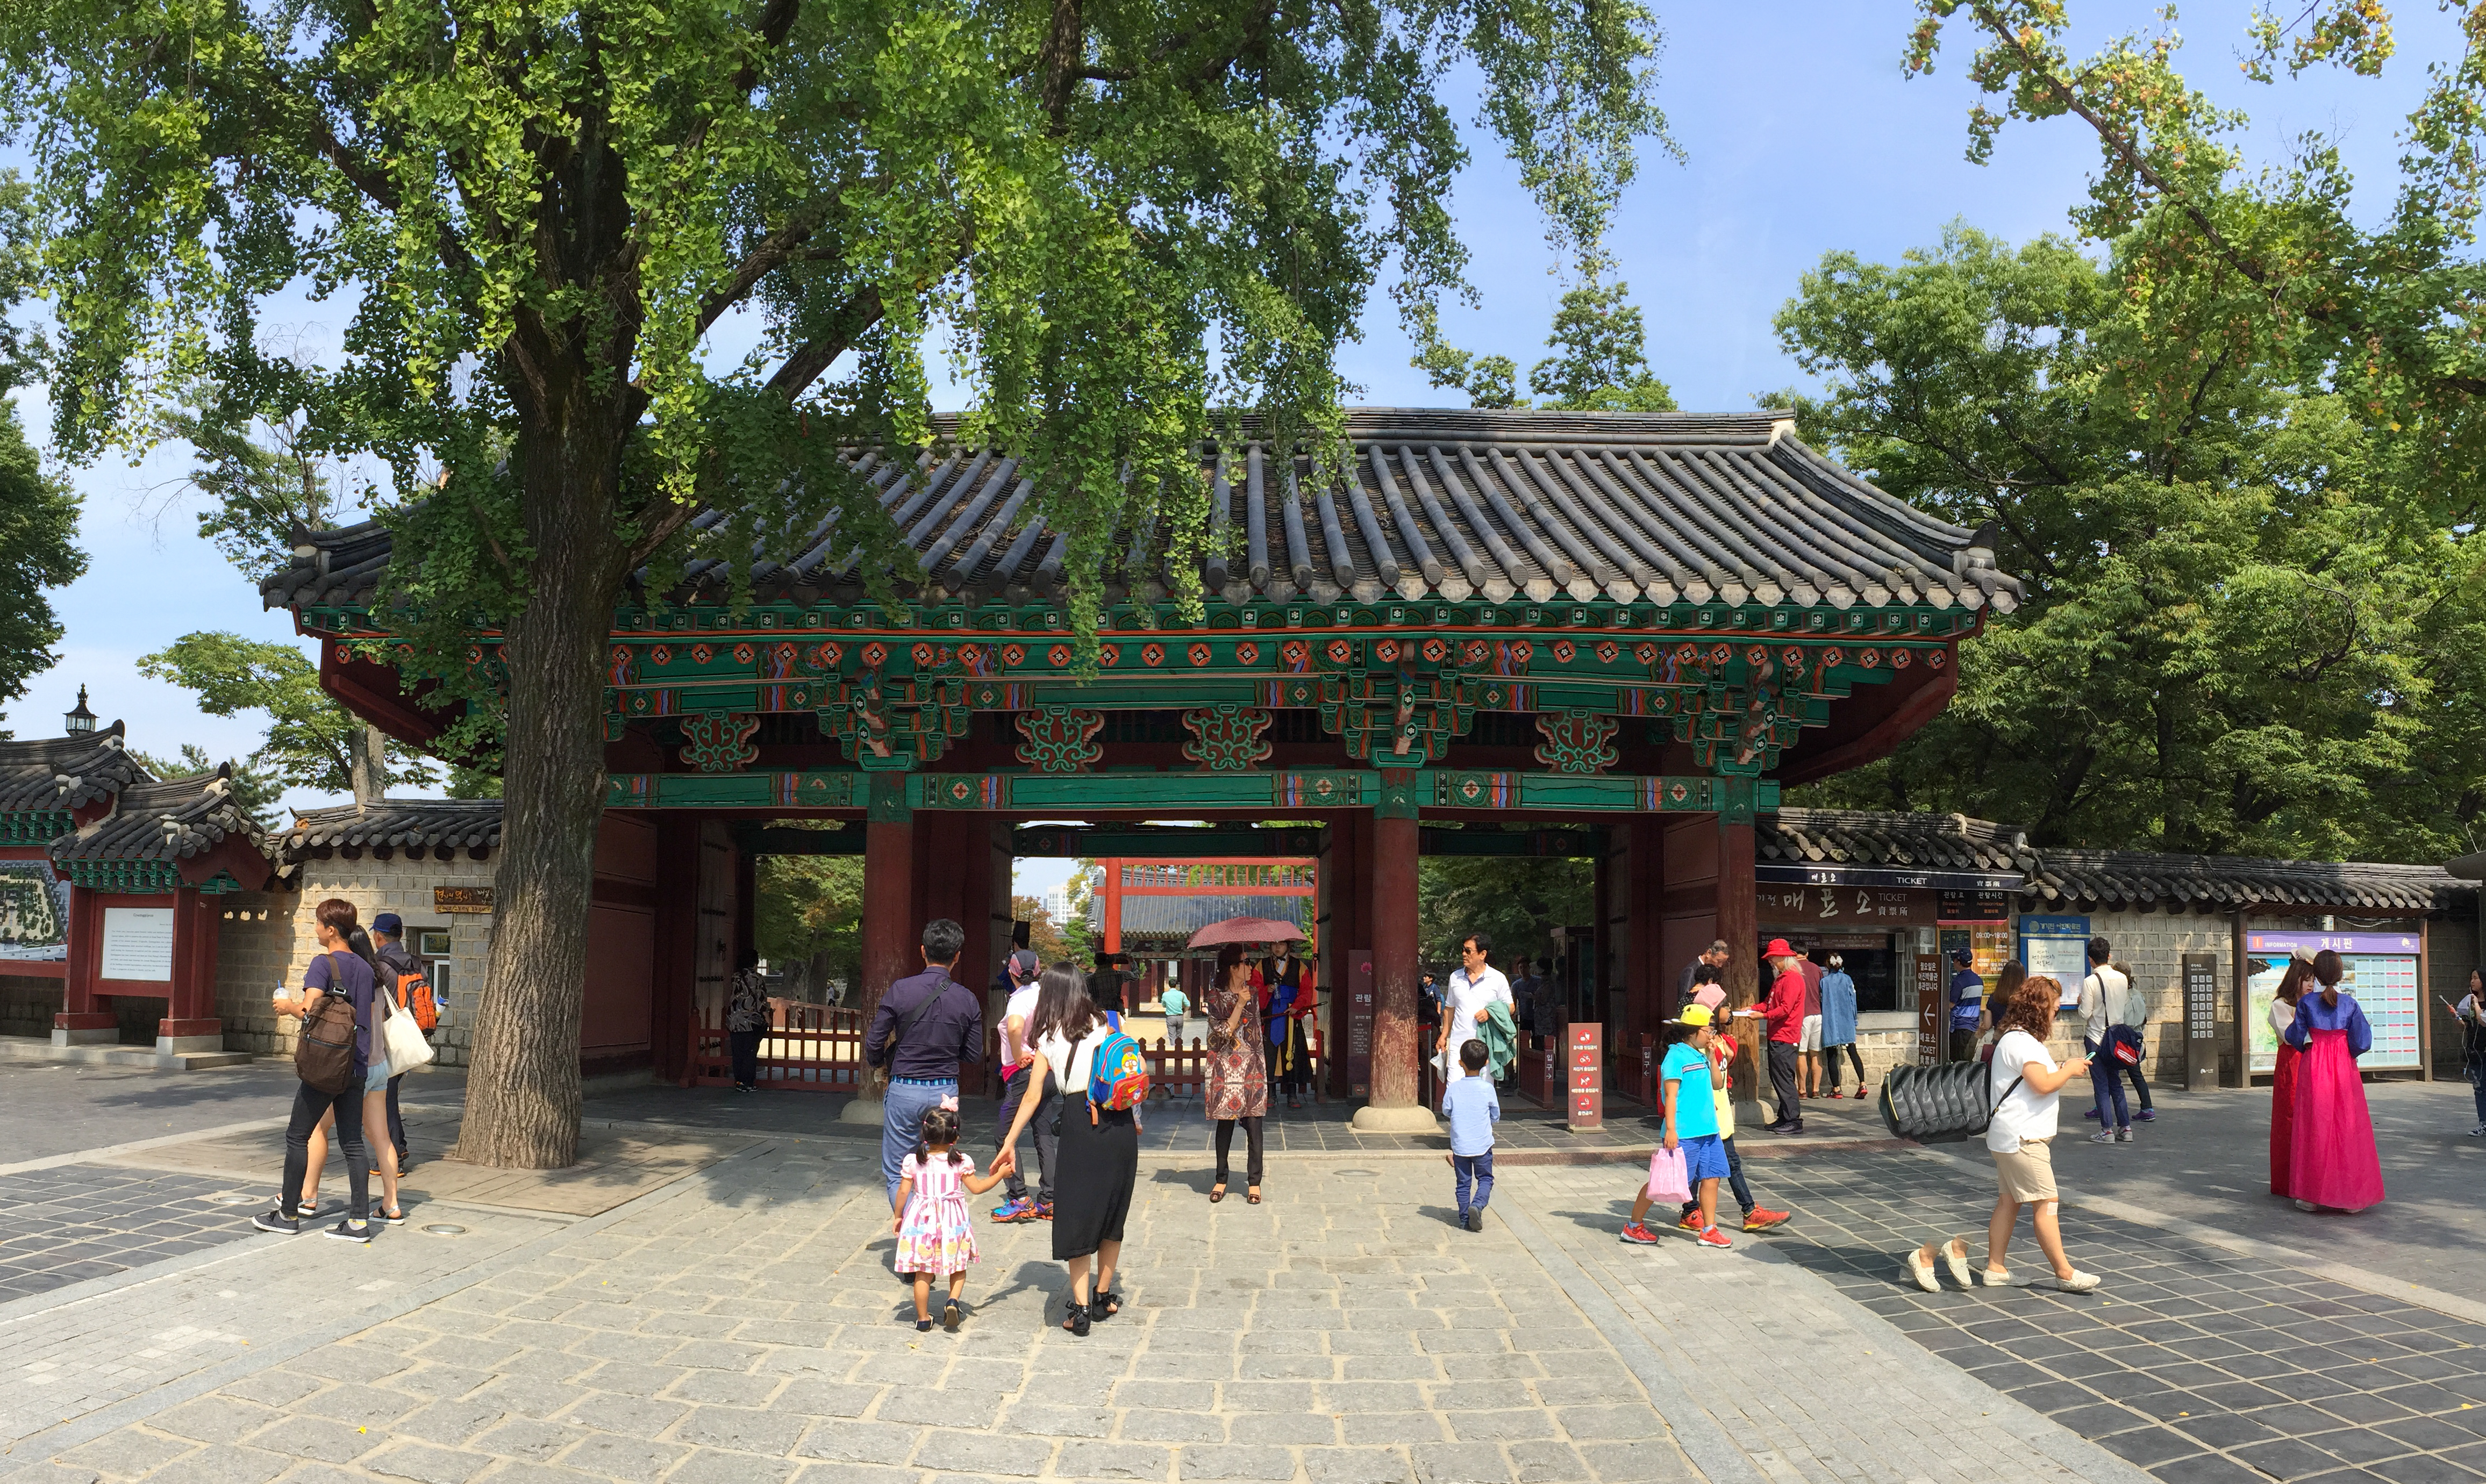 The gate in Hanok Village